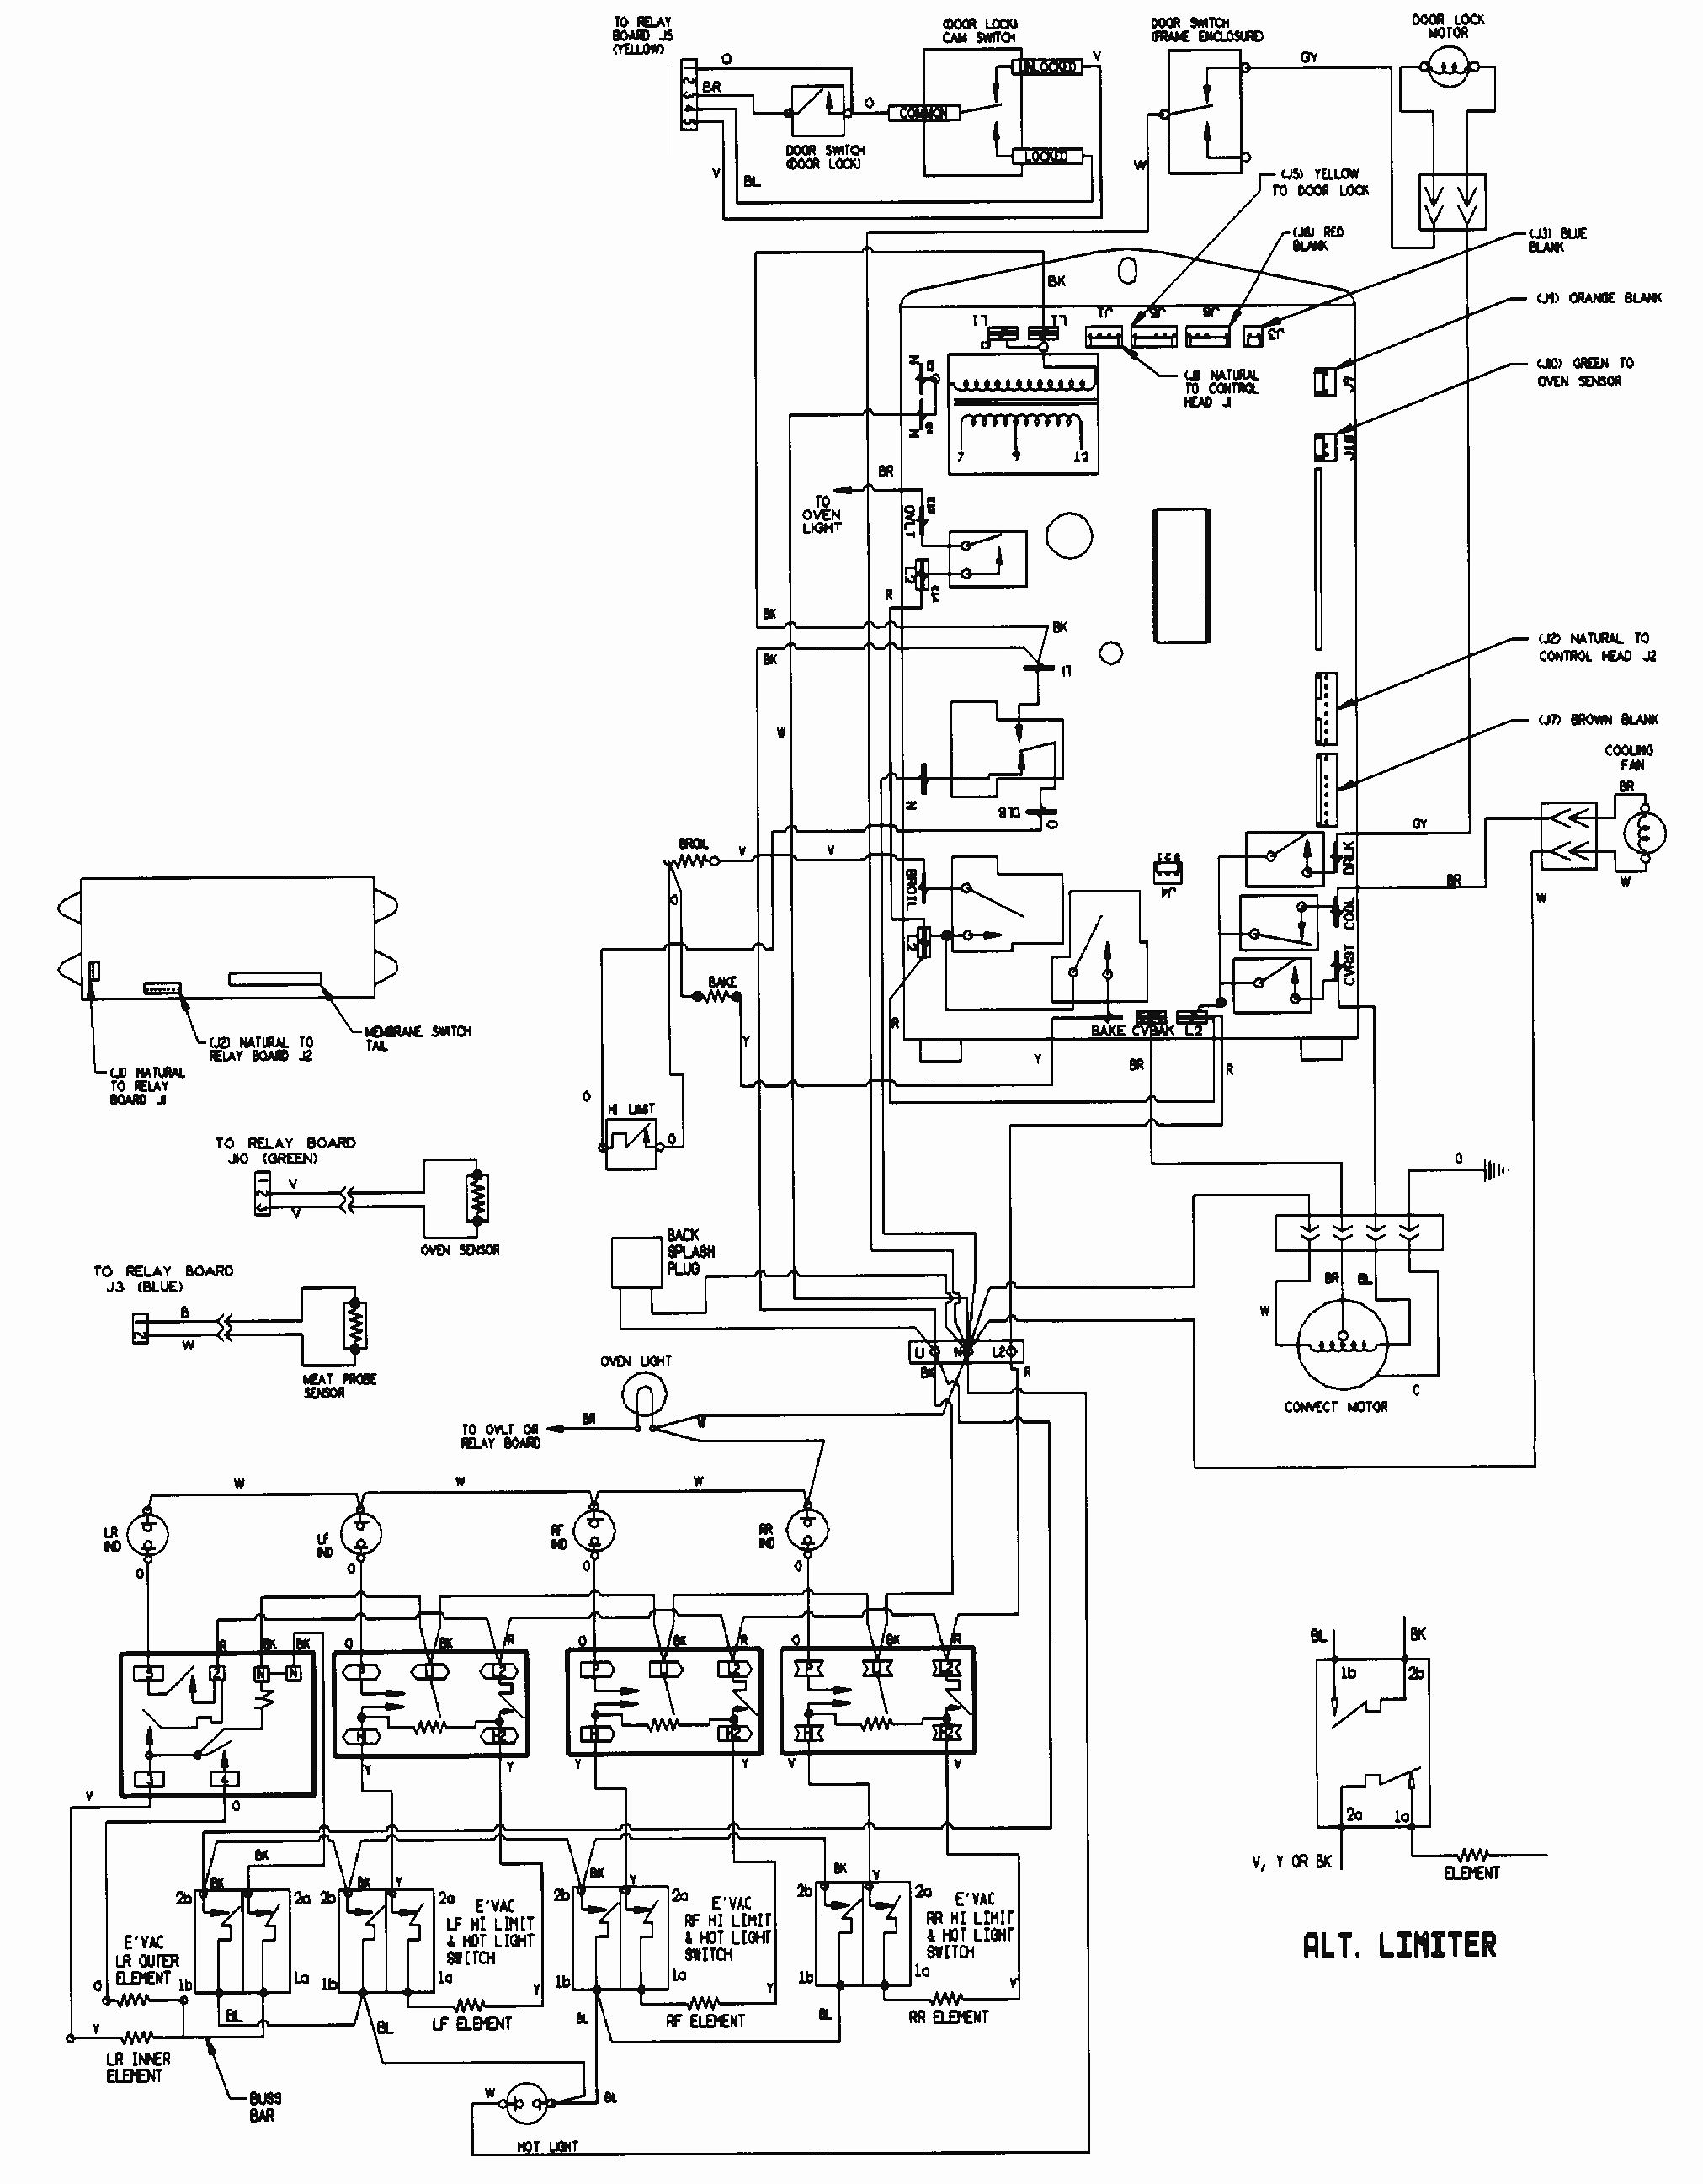 pool timer wiring diagram intermatic oracle rac architecture st01 gallery sample collection light beautiful gm40 timer2